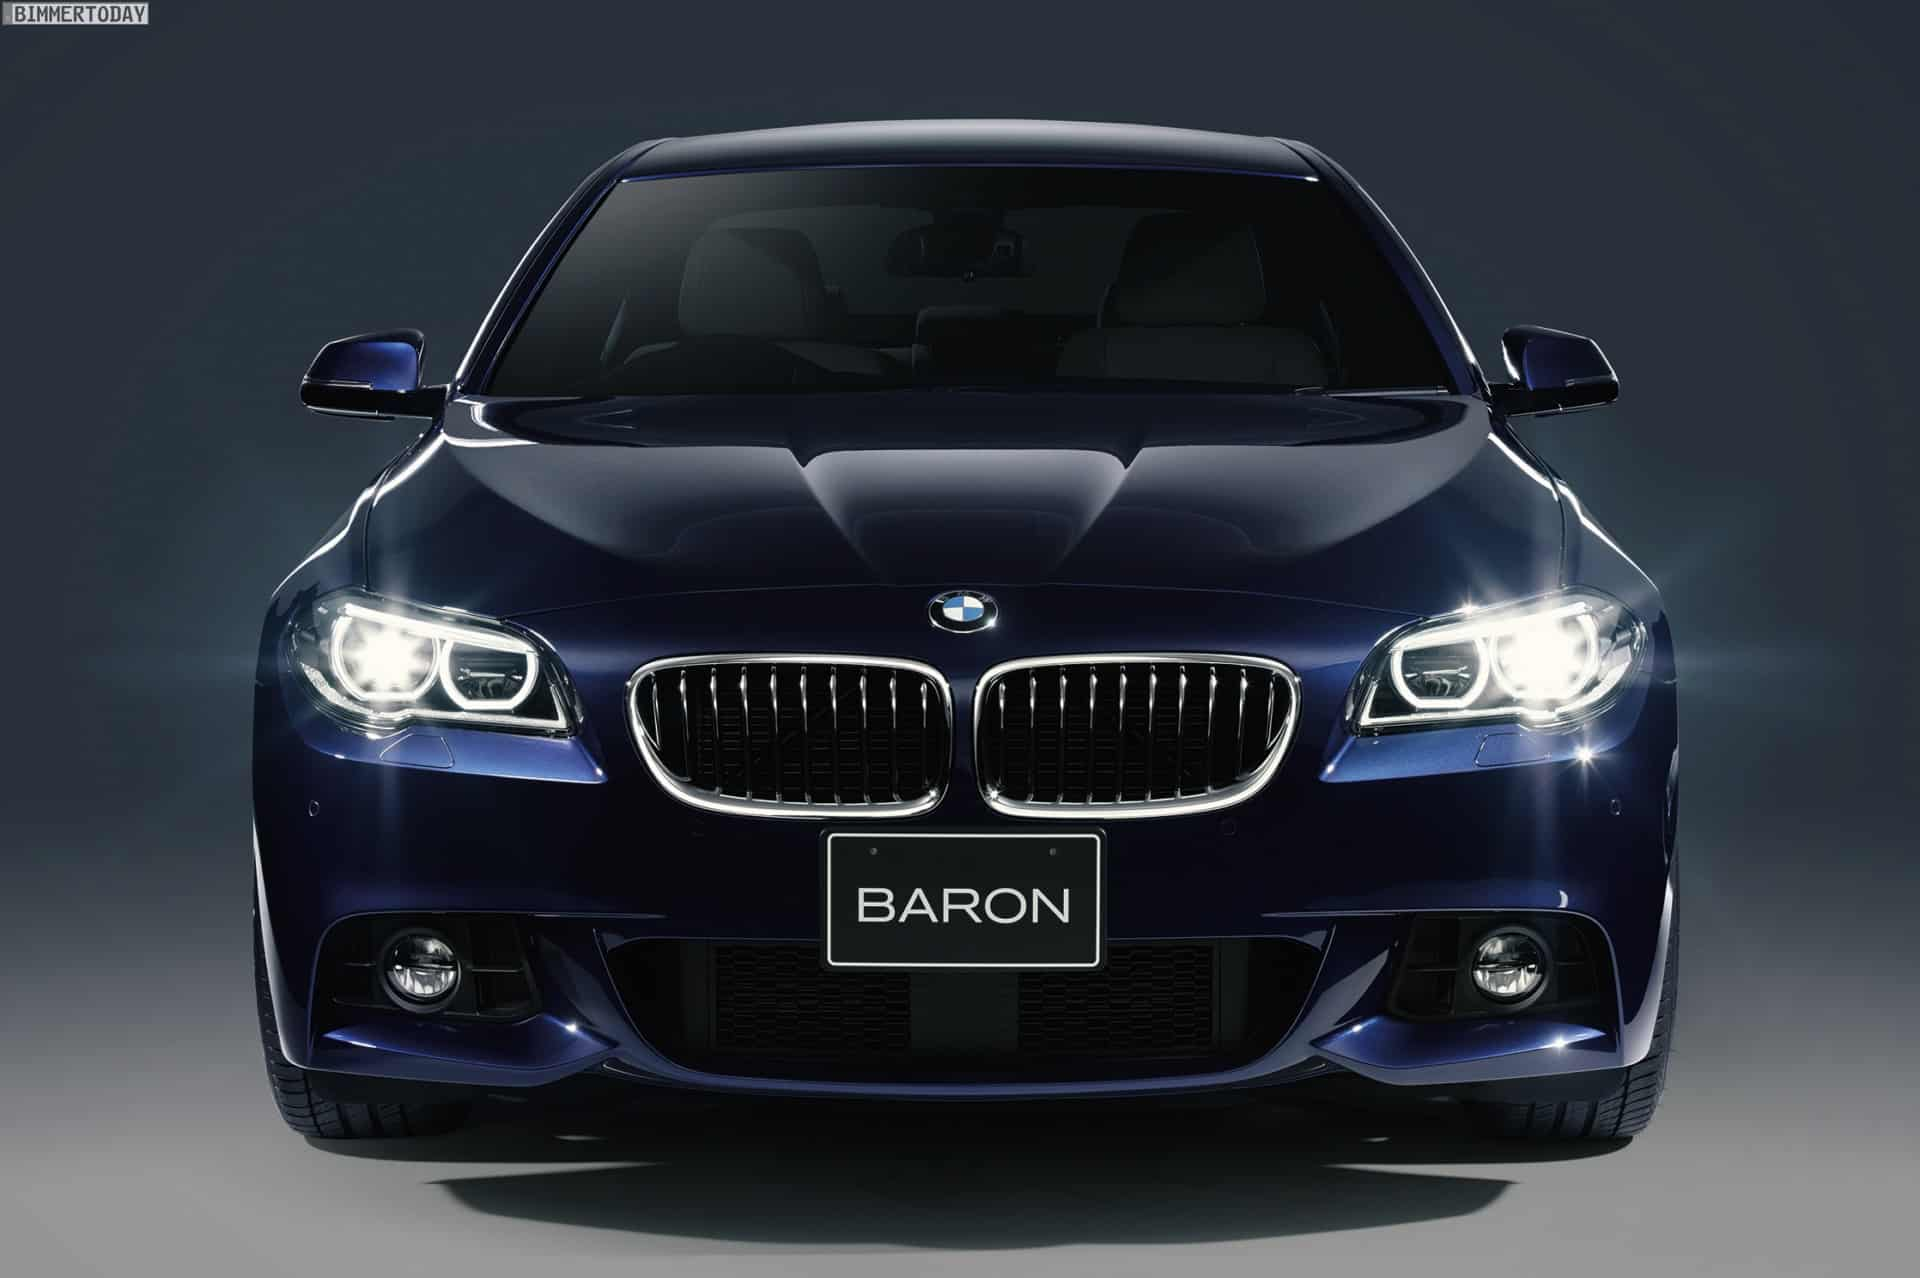 BMW 5er Baron - Sonderedition für Japan